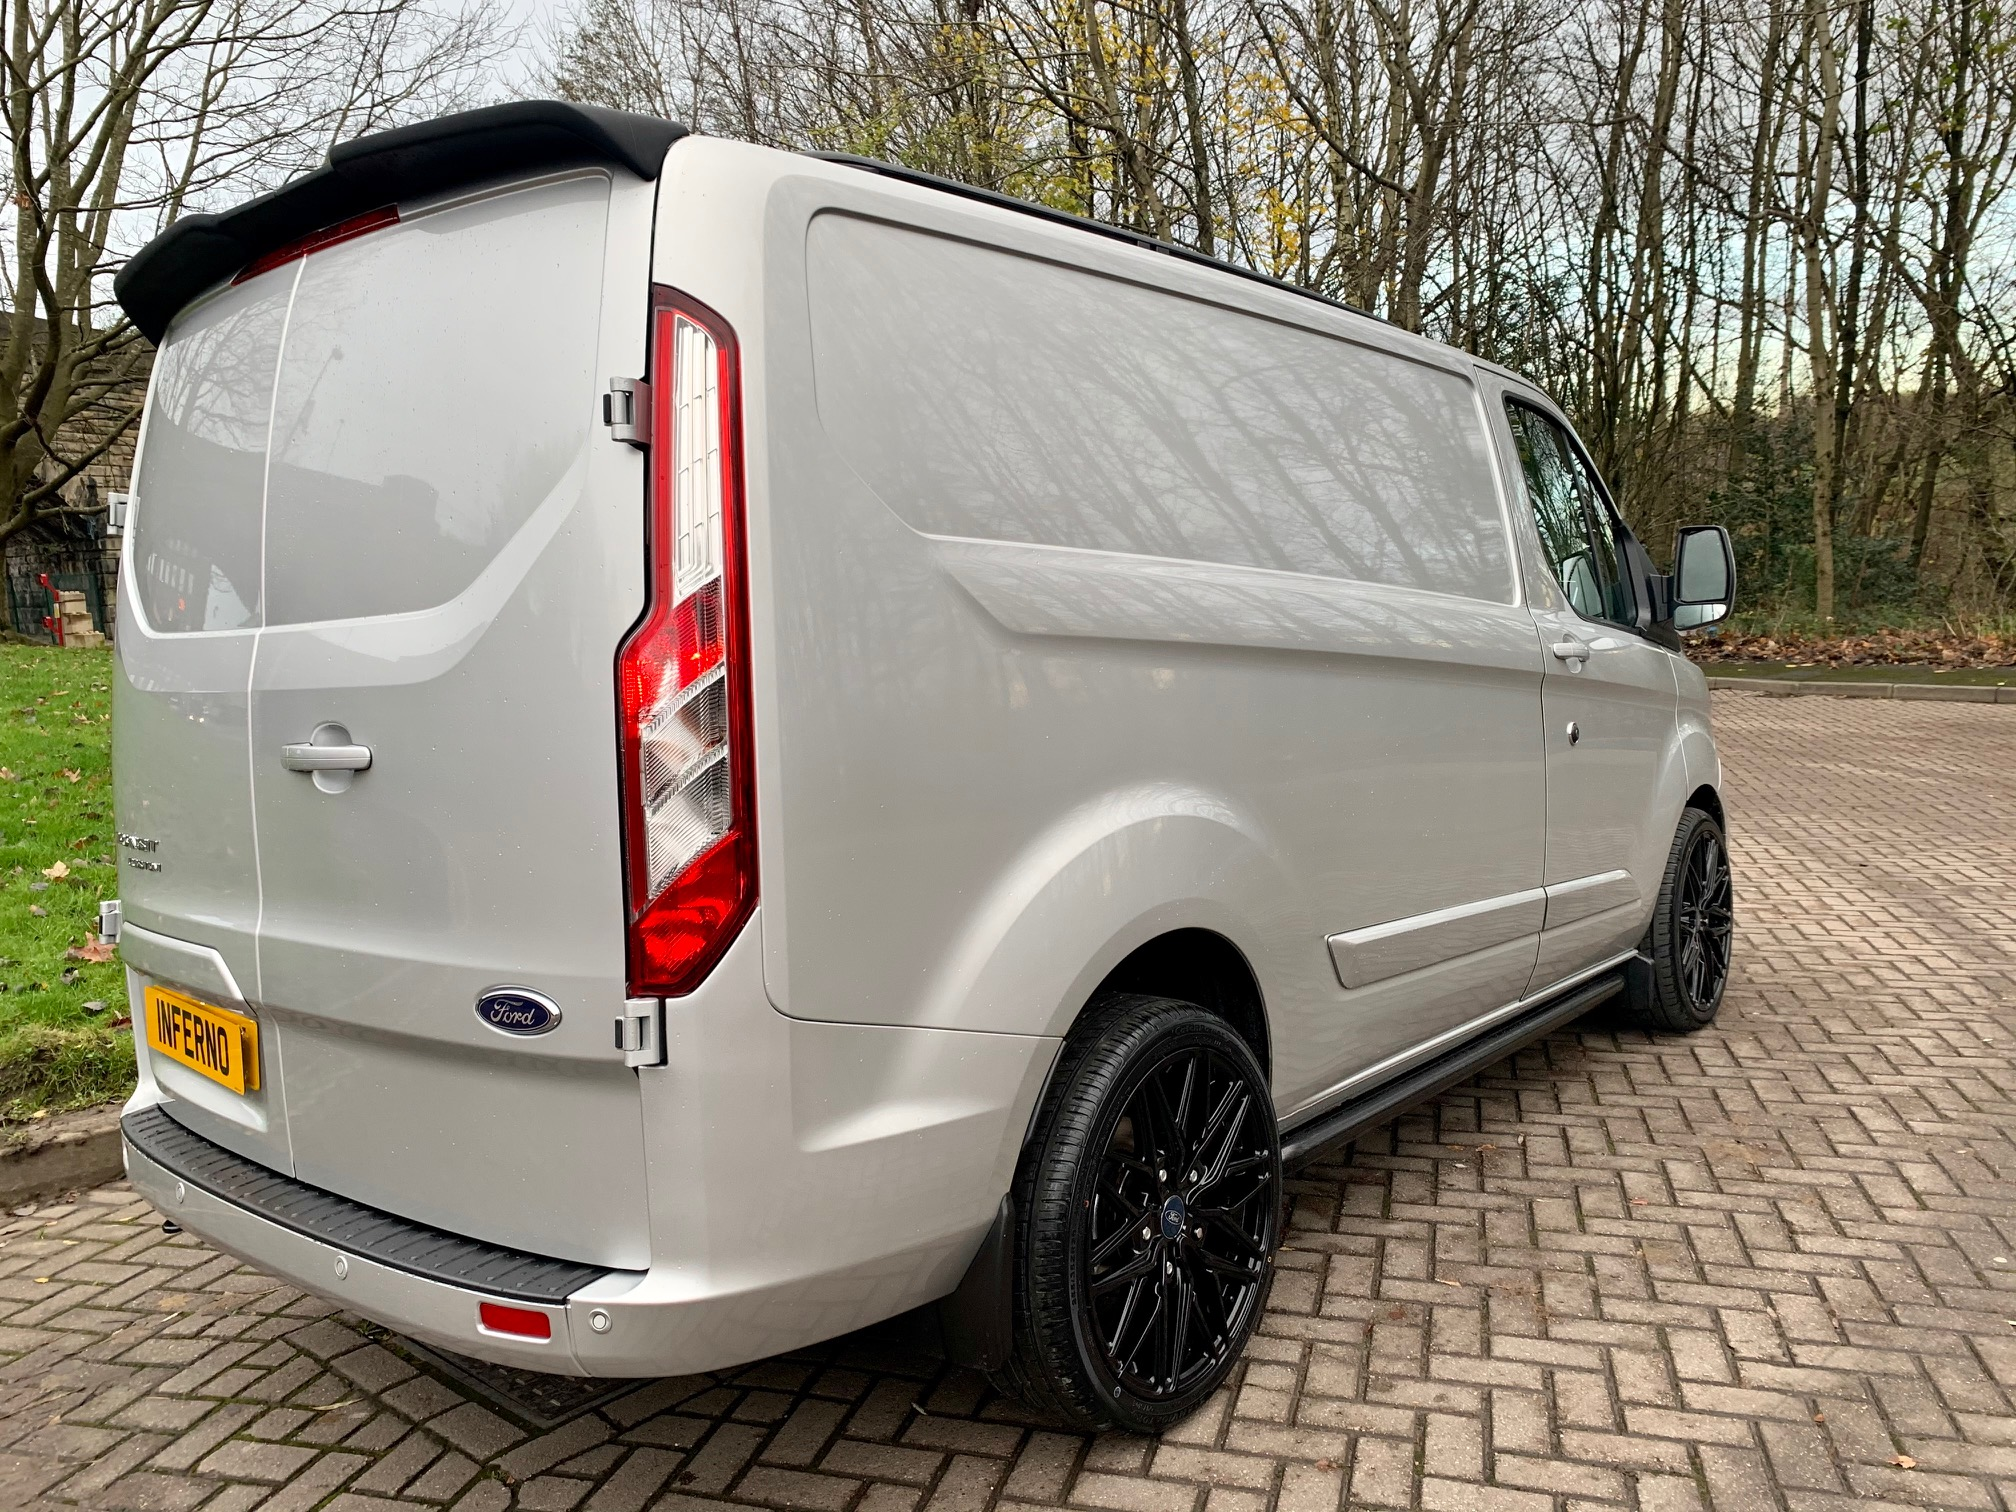 IMG_8181.jpg - 300 L1 DIESEL FWD 2.0 EcoBlue 170ps Low Roof Limited Van Auto Inferno